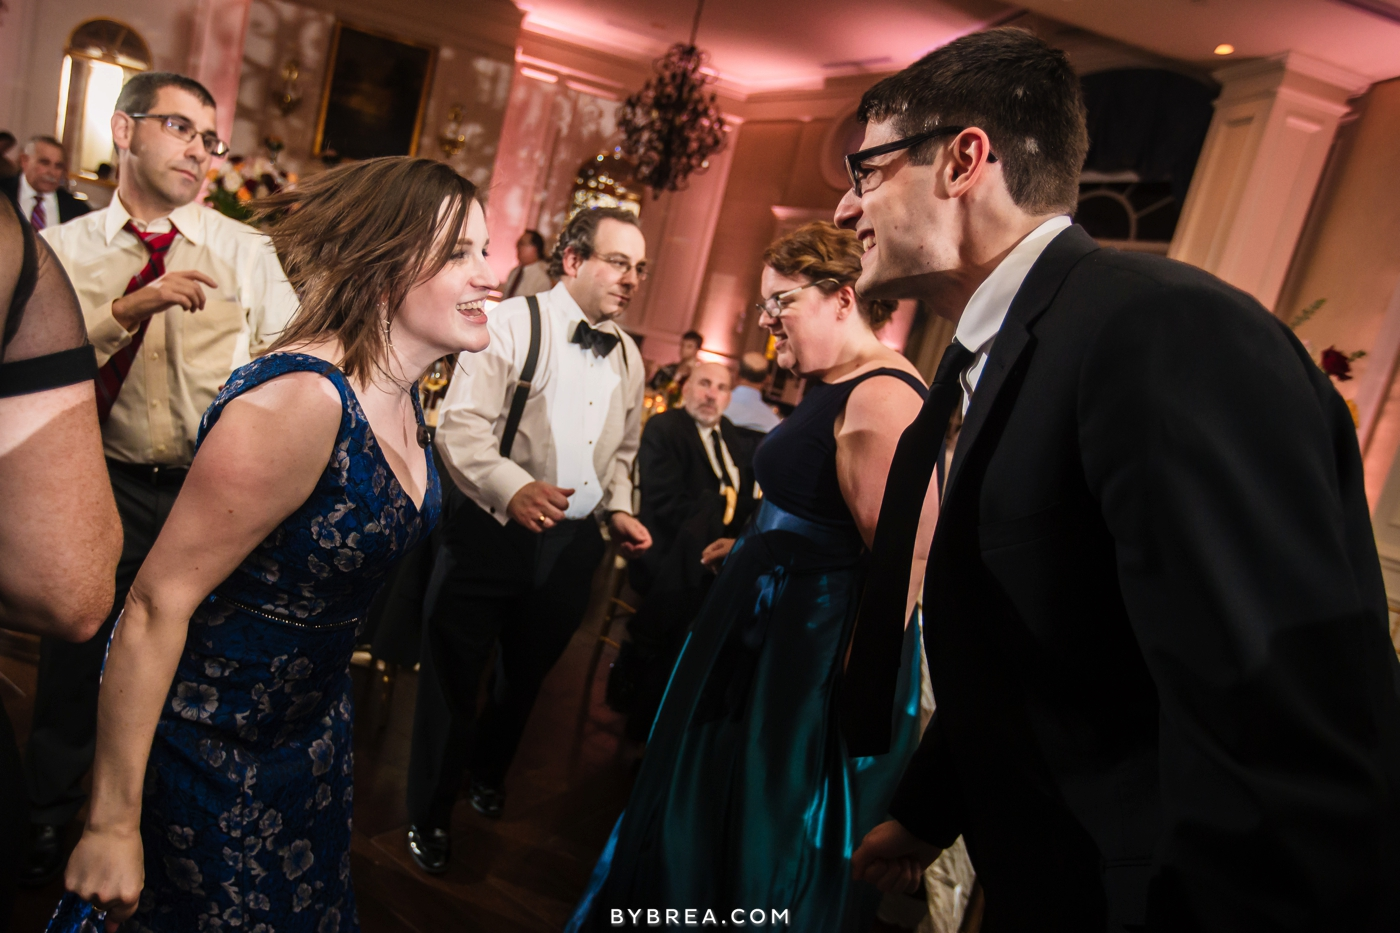 Army Navy Country Club wedding guests dancing together